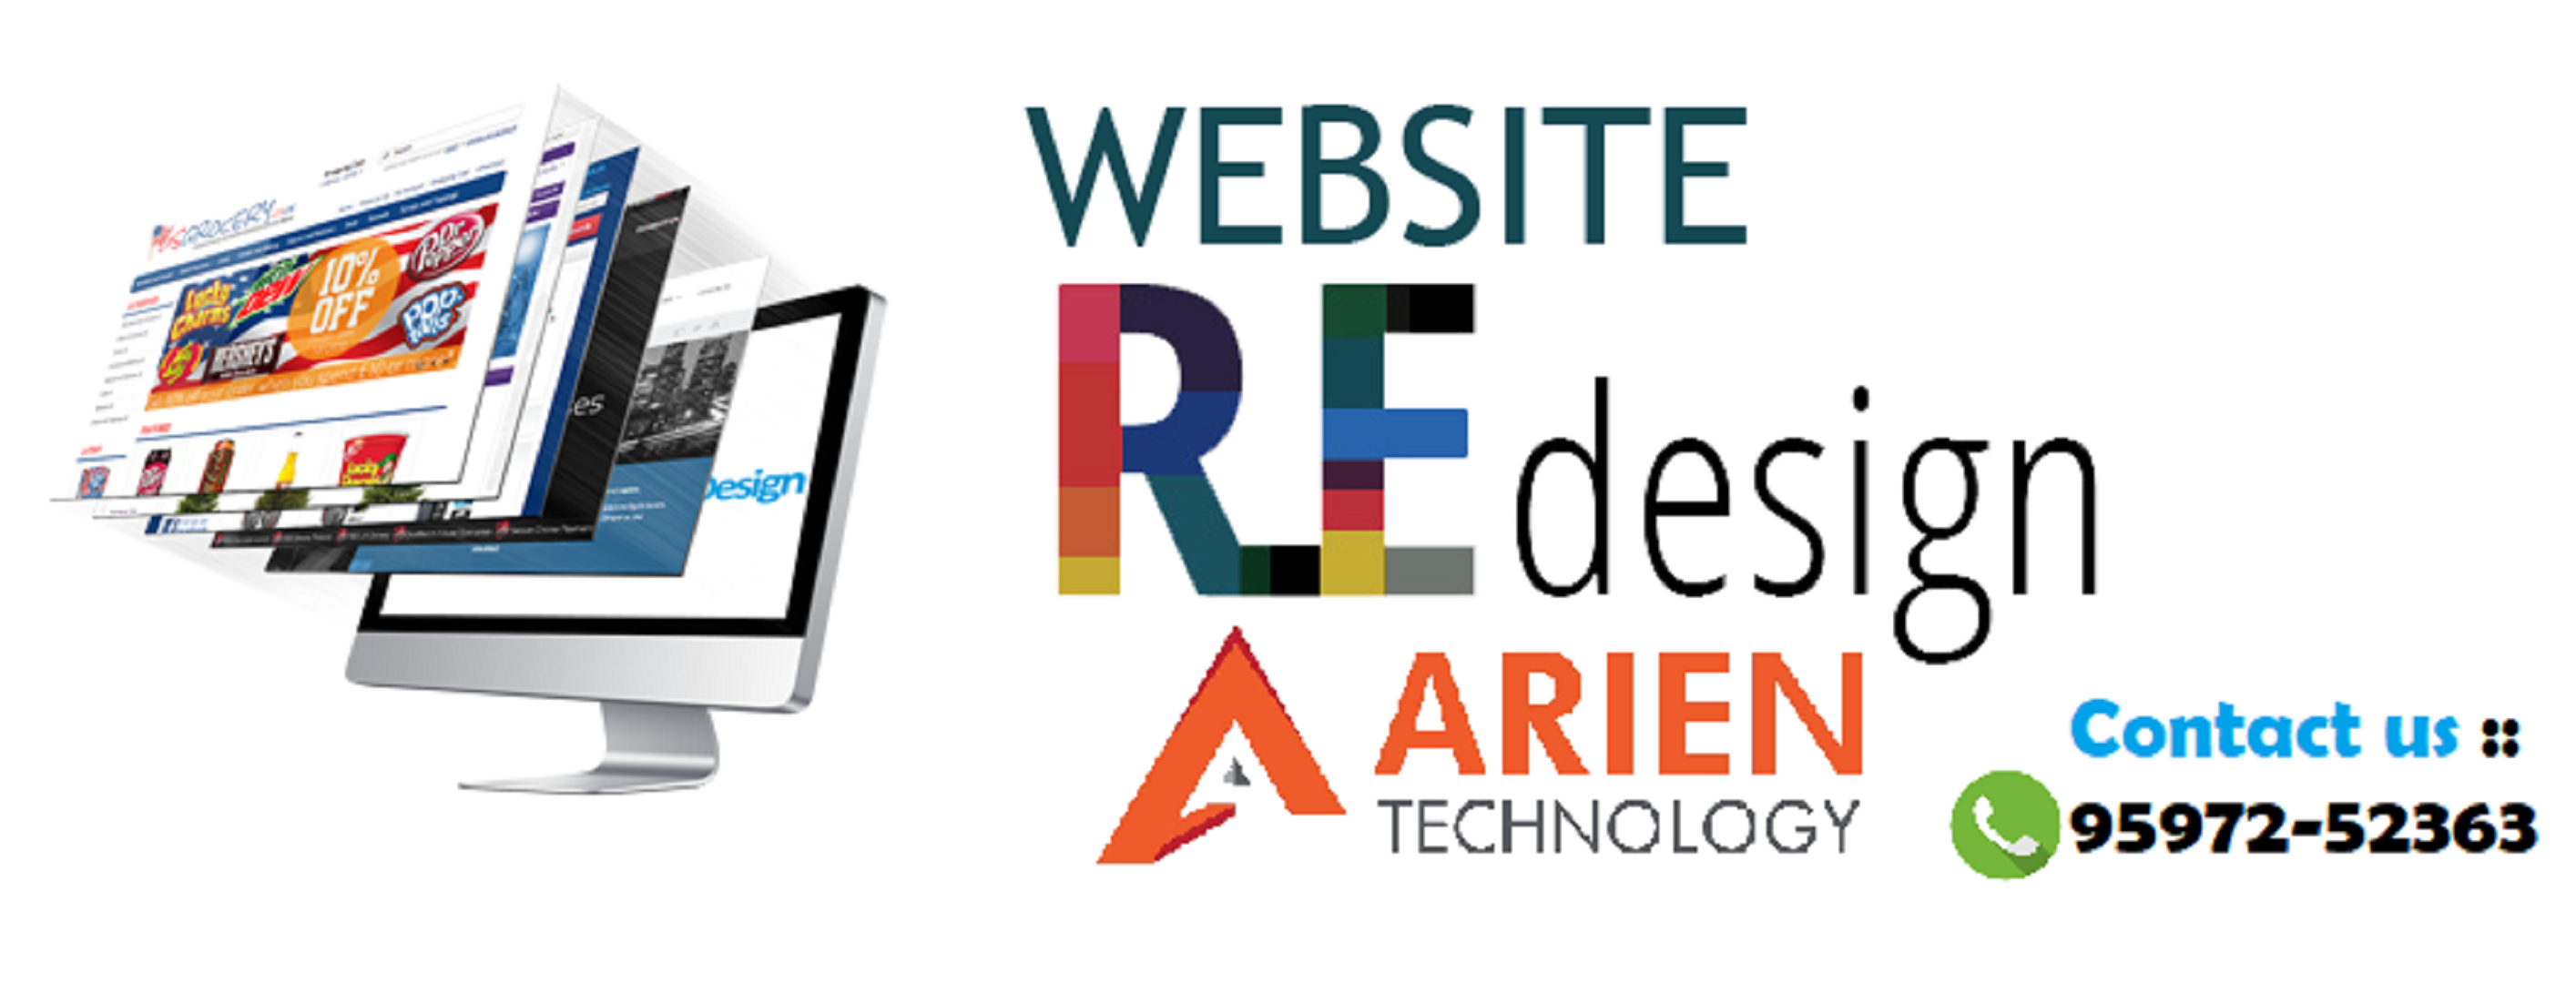 Arientec Web Development Company Web Design Company Web Development